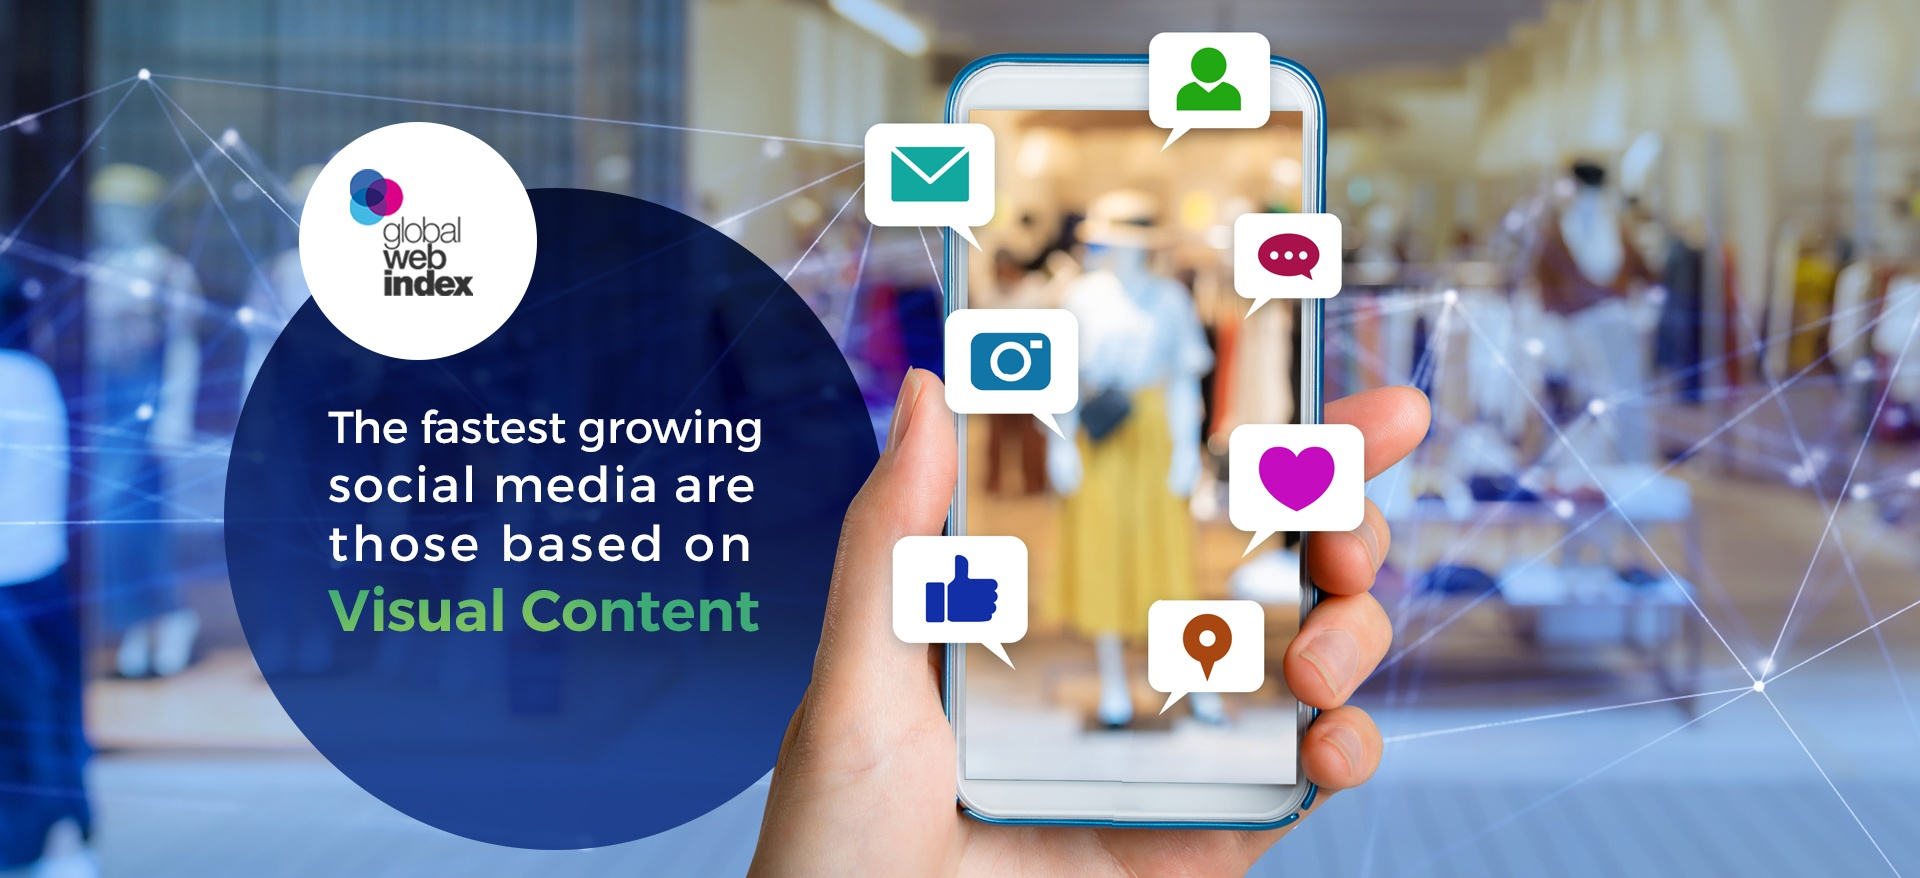 Visual Content attract people on social media networks more than other